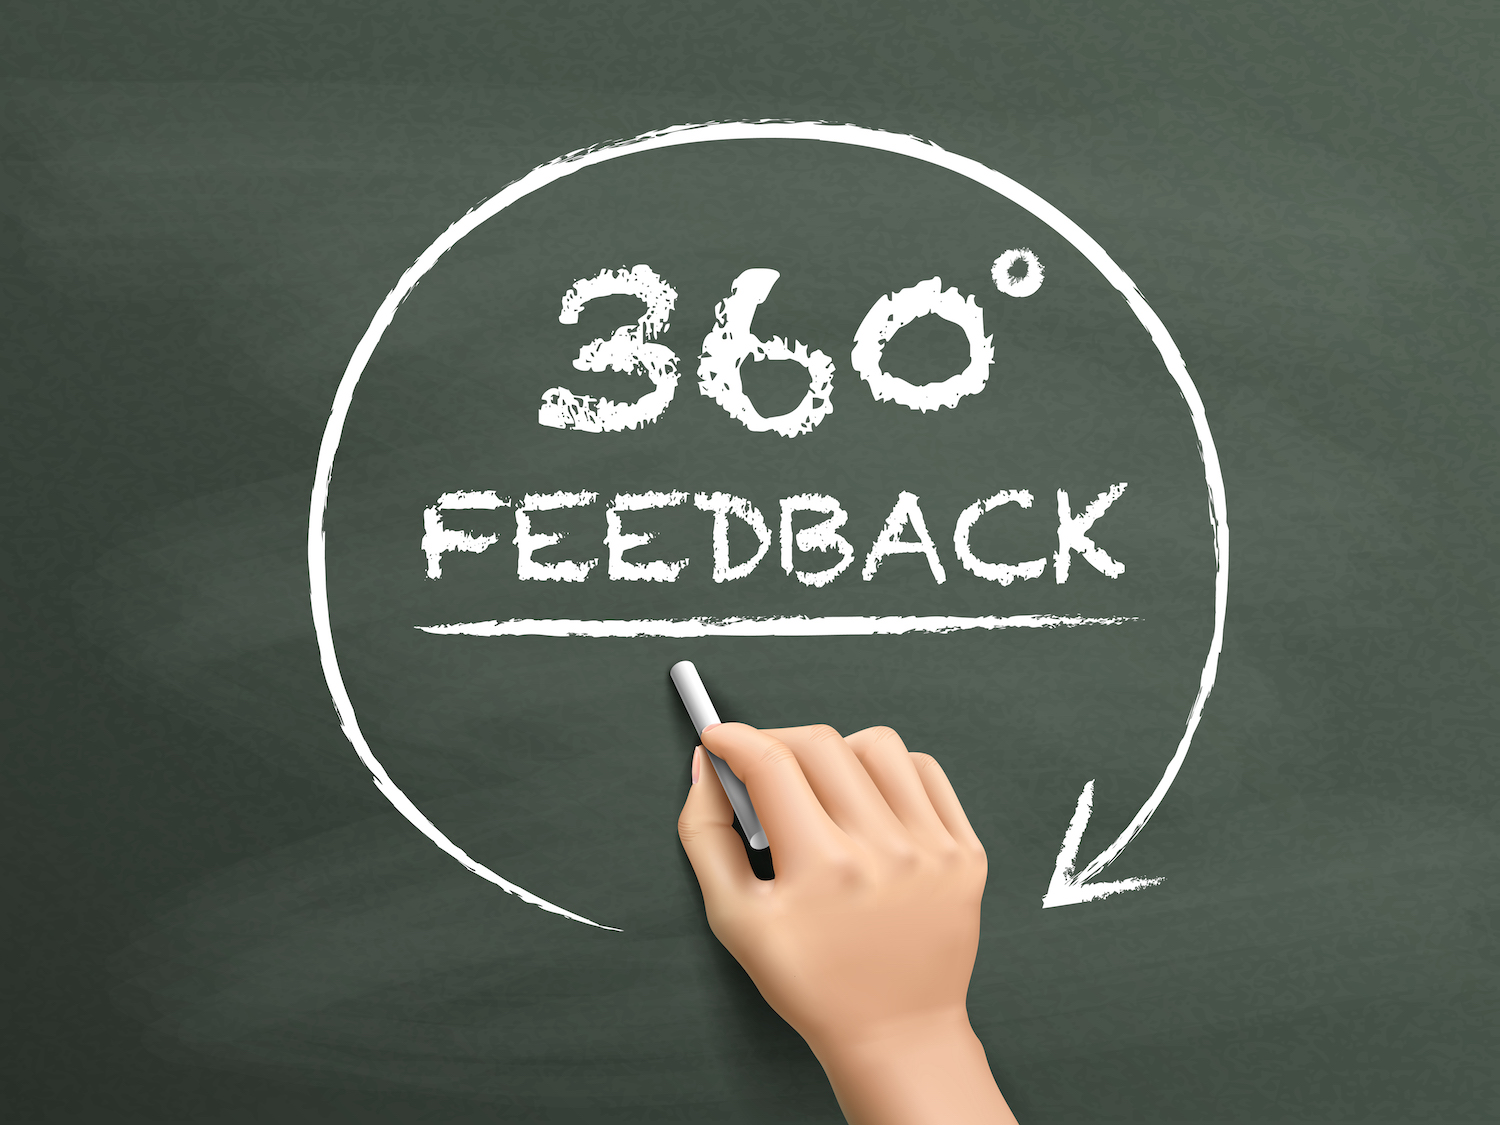 360 degrees feedback